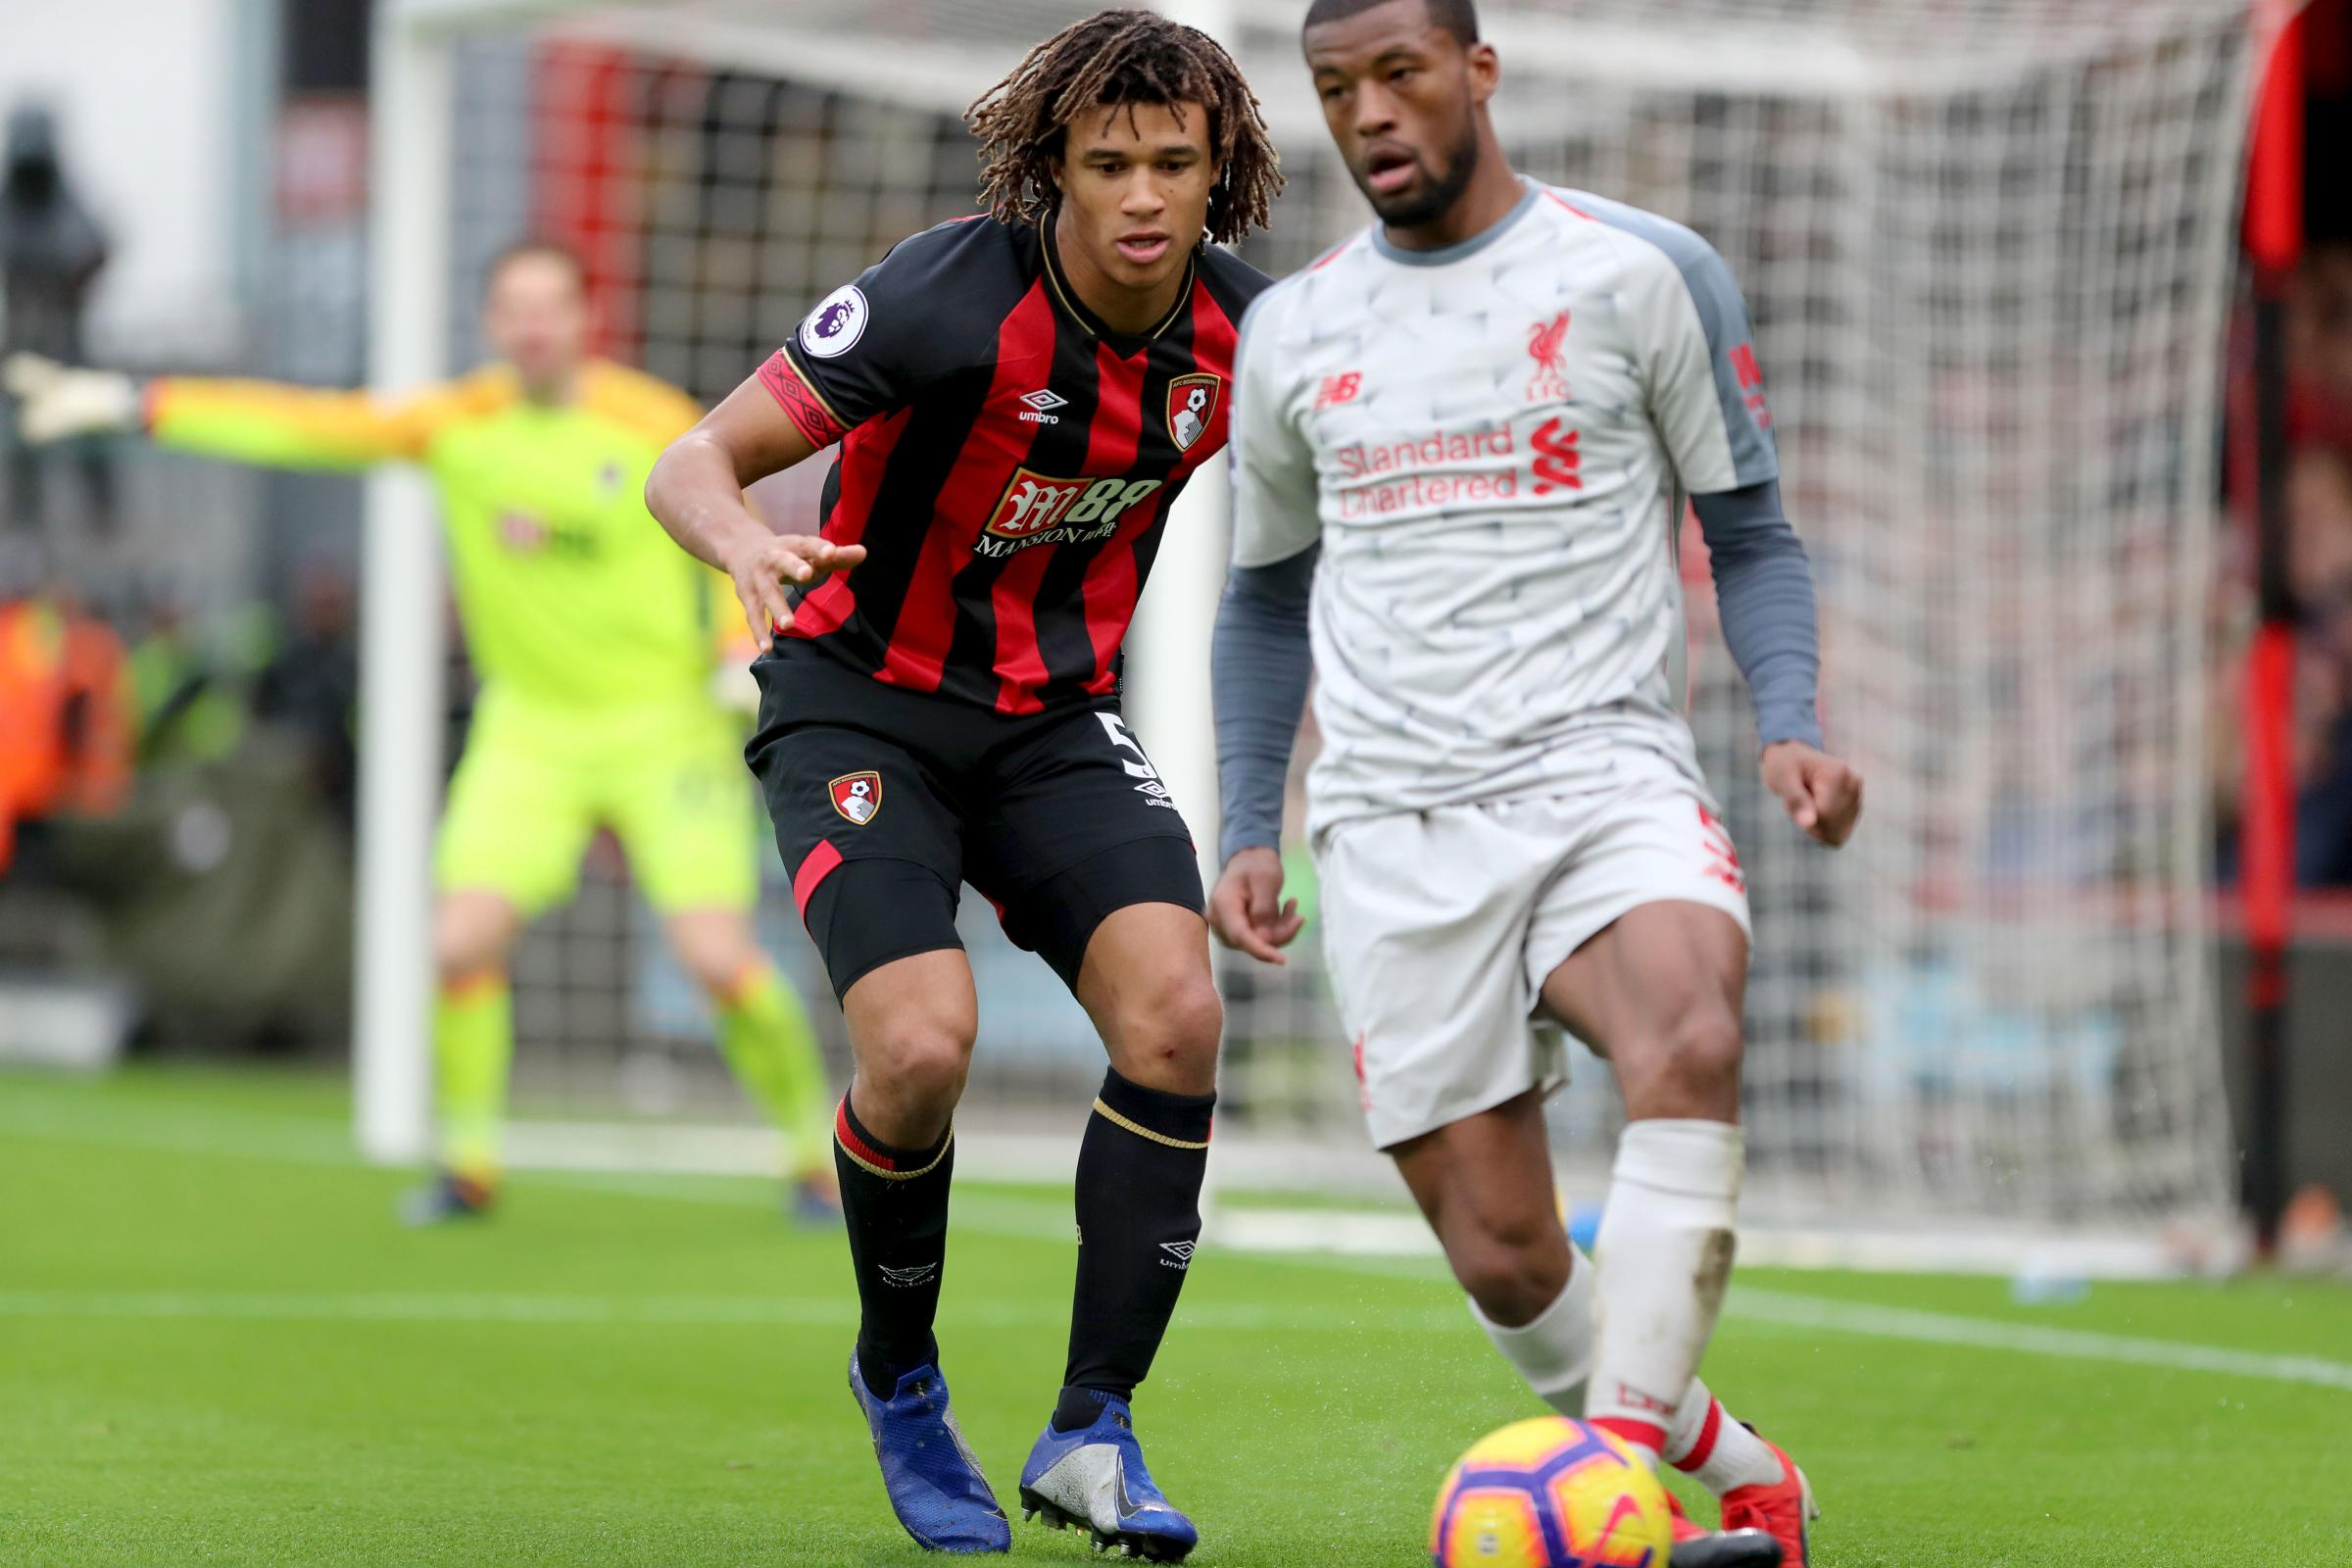 Report claims Tottenham 'ready to make £40million bid' for AFC Bournemouth defender Nathan Ake